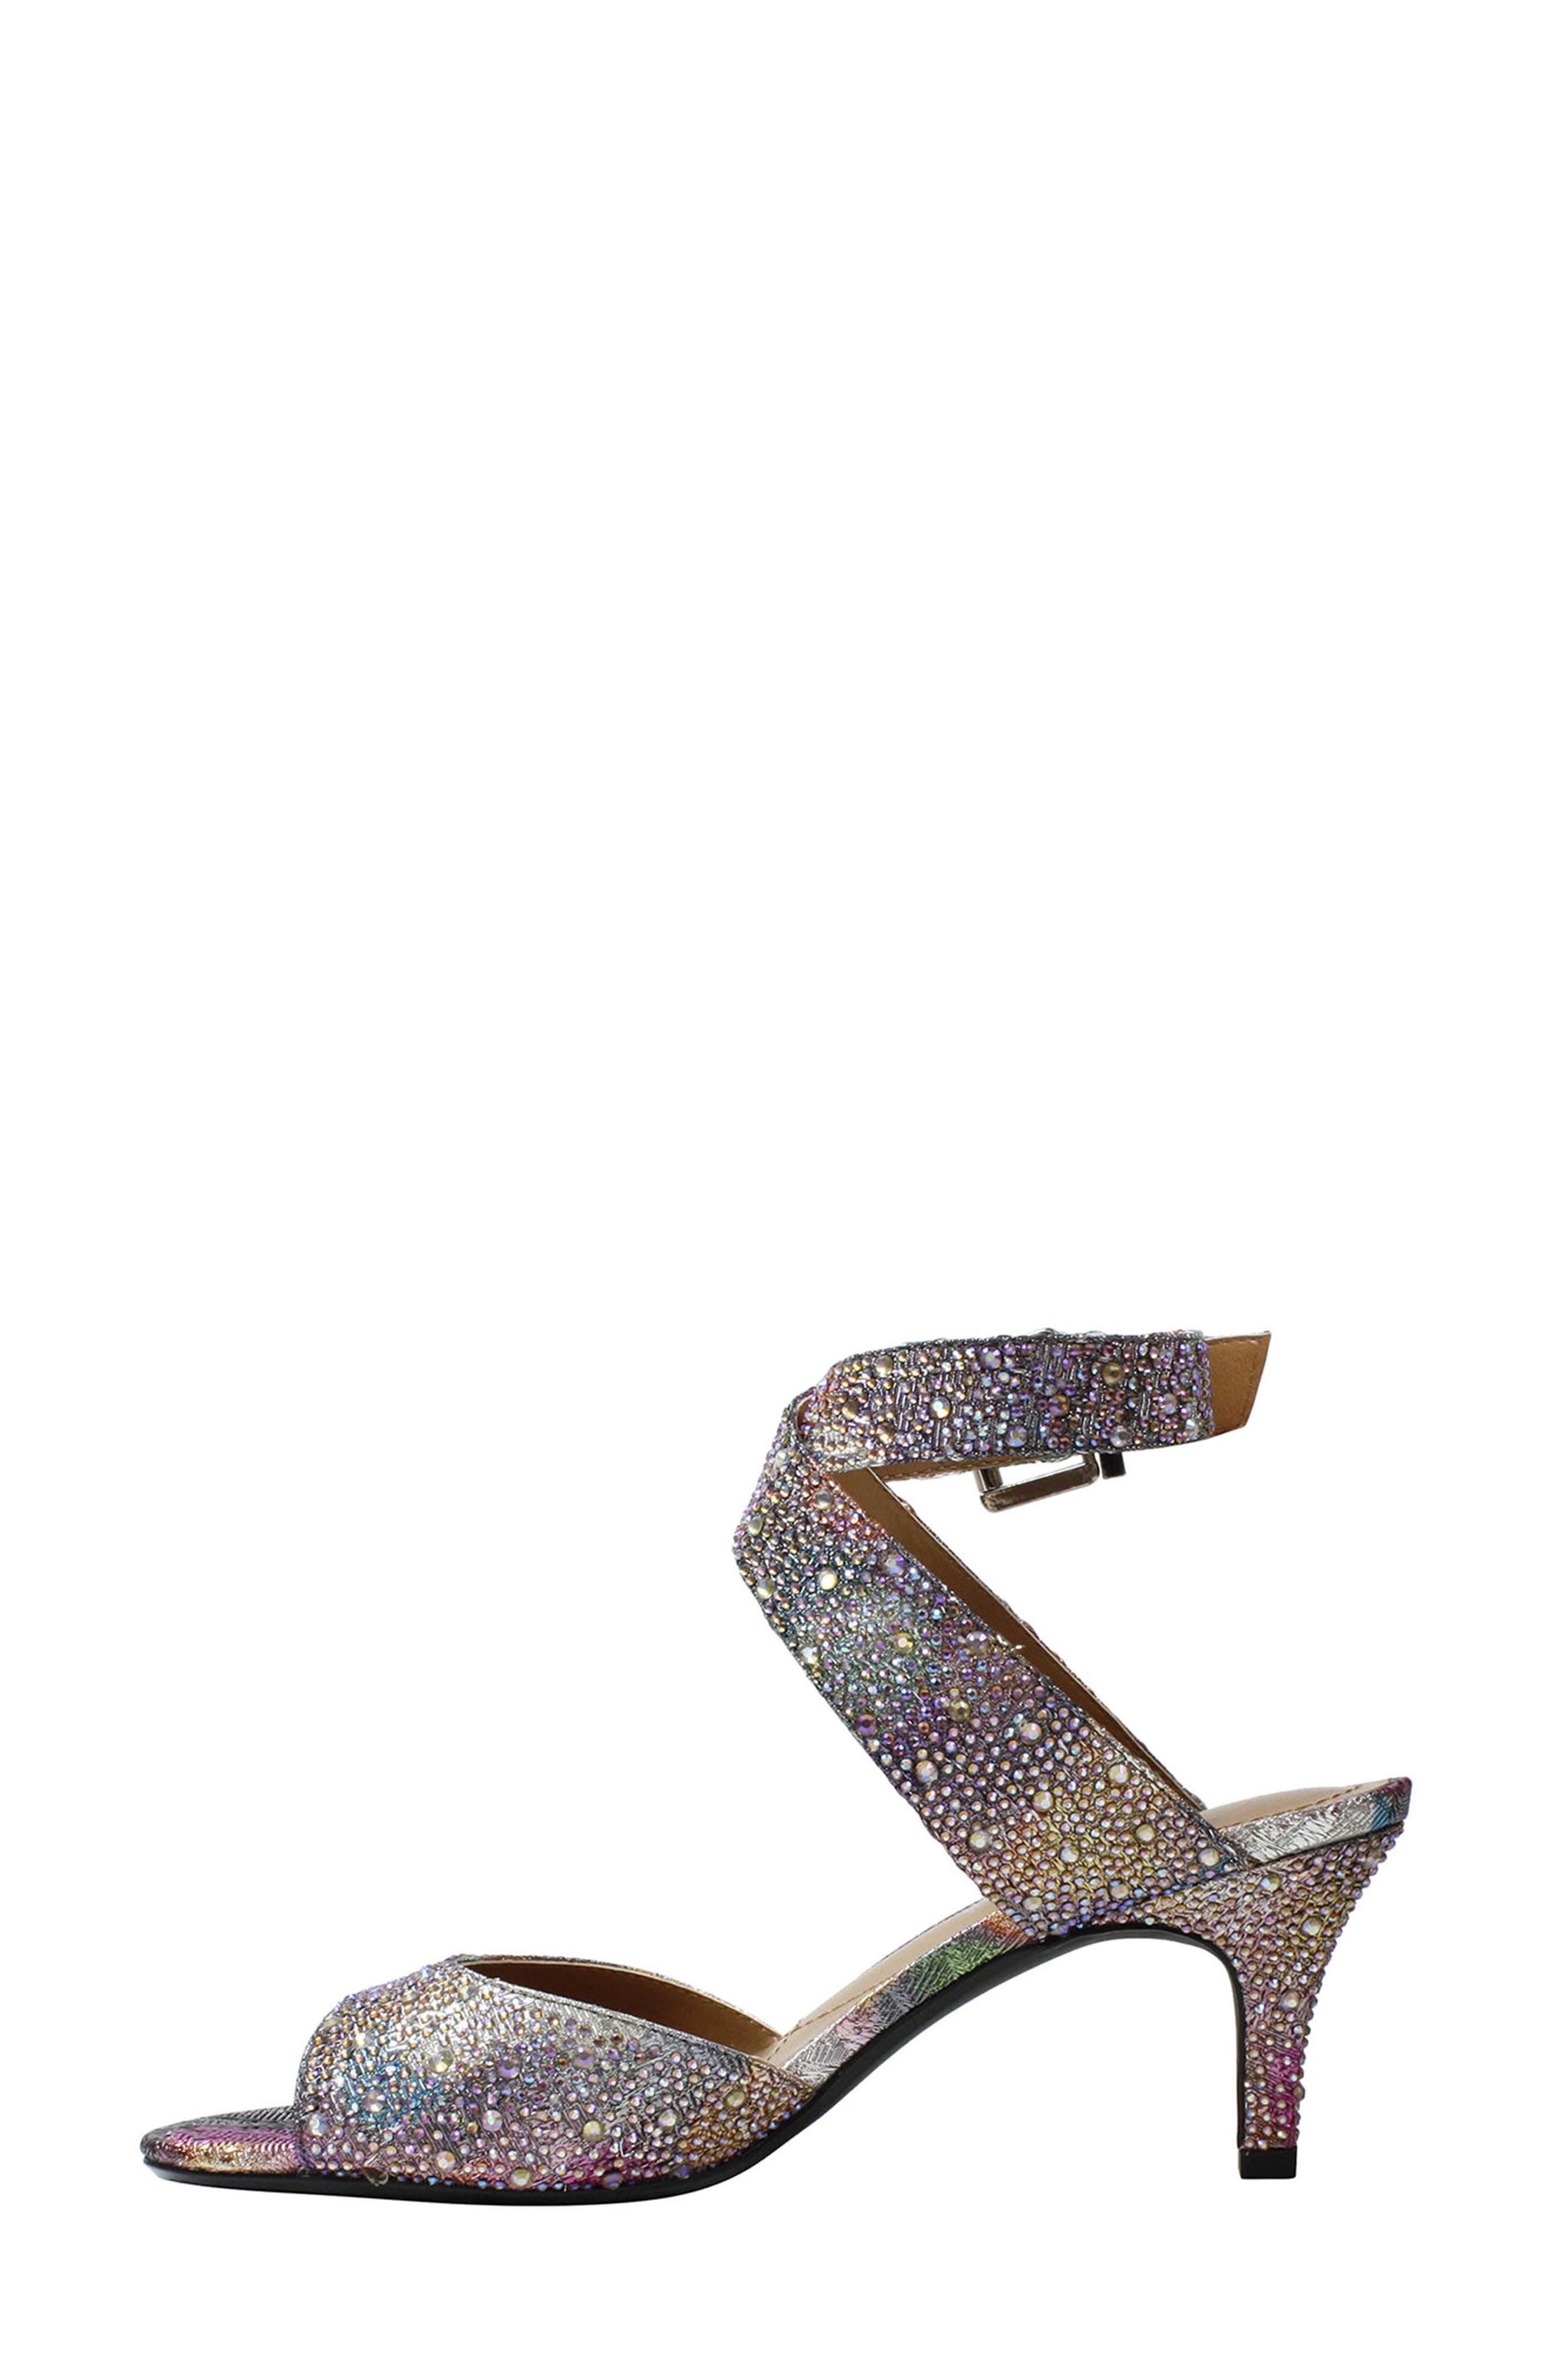 'Soncino' Ankle Strap Sandal,                             Alternate thumbnail 3, color,                             Silver/ Pastel Fabric